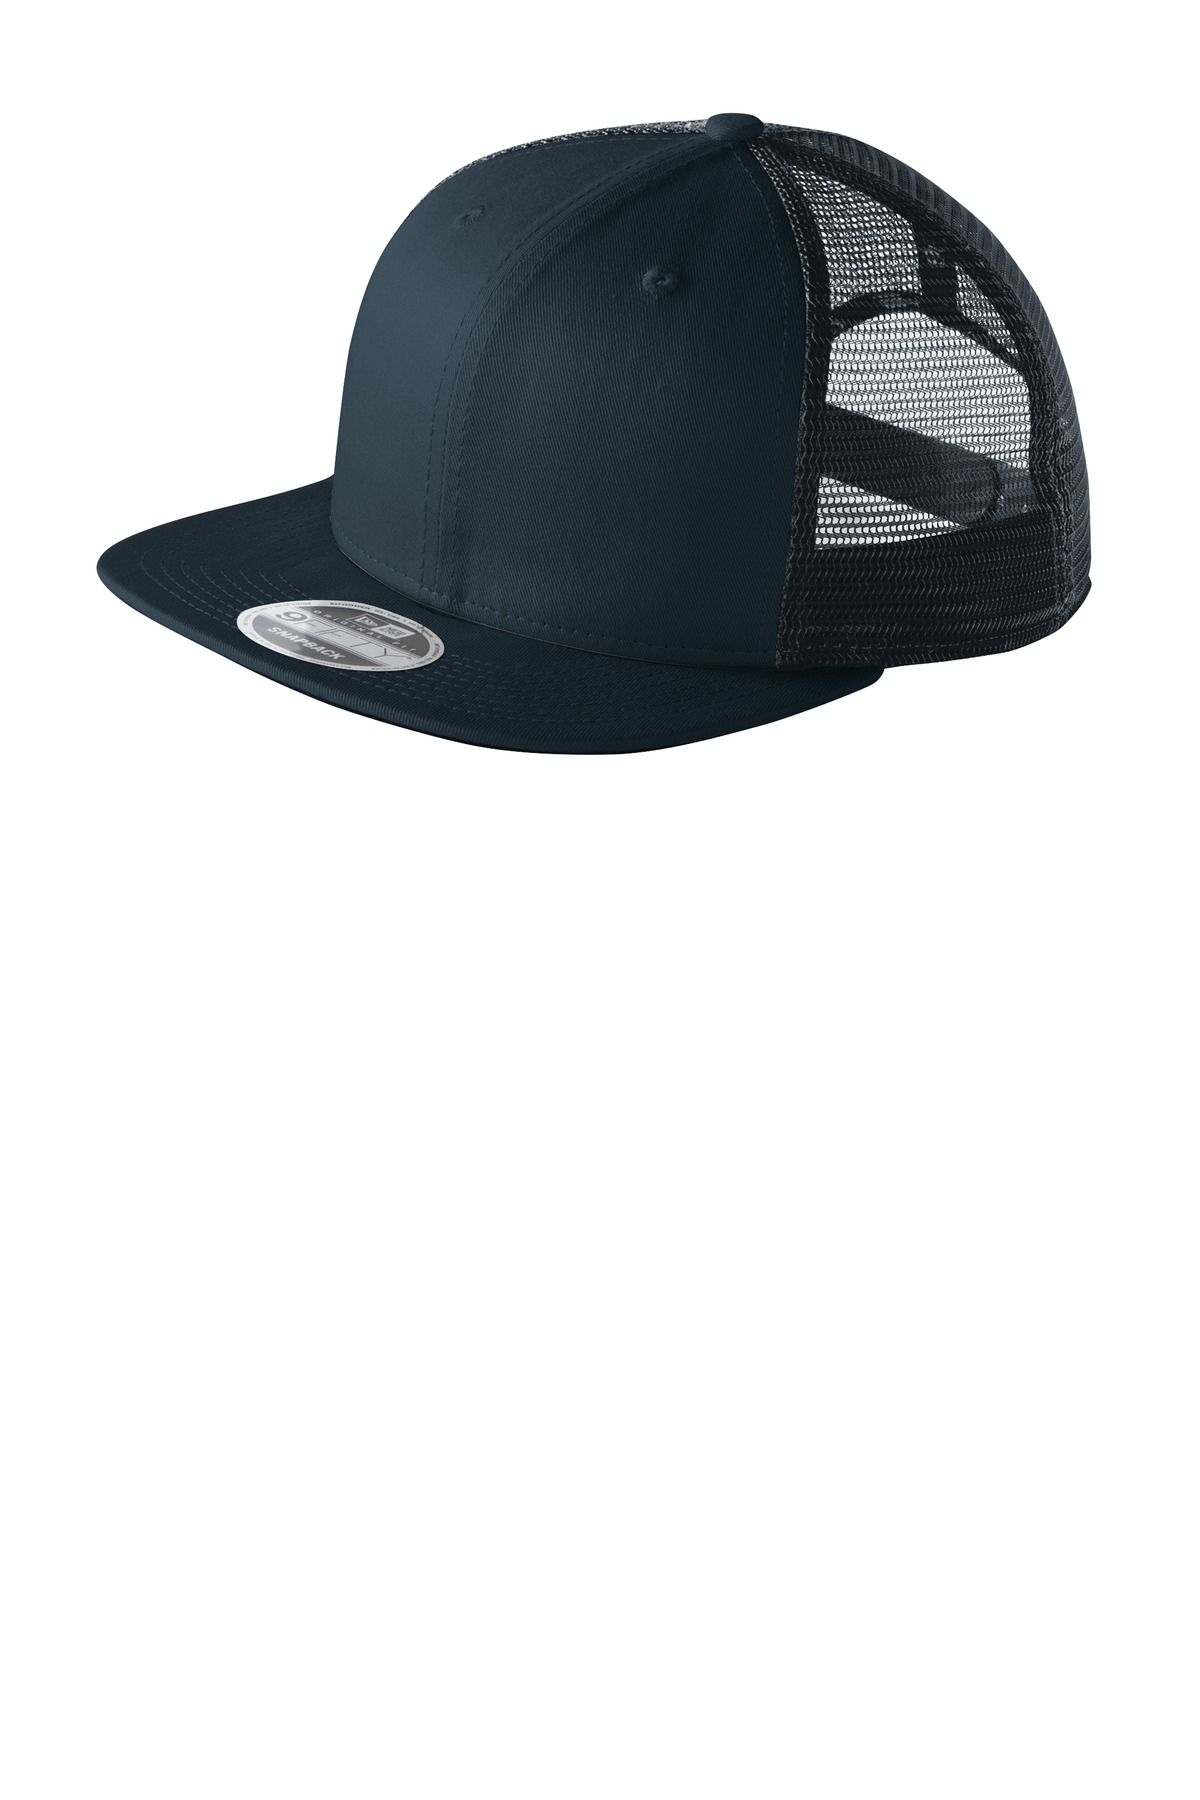 New Era ®  Original Fit Snapback Trucker Cap. NE403 - Deep Navy/ Deep Navy